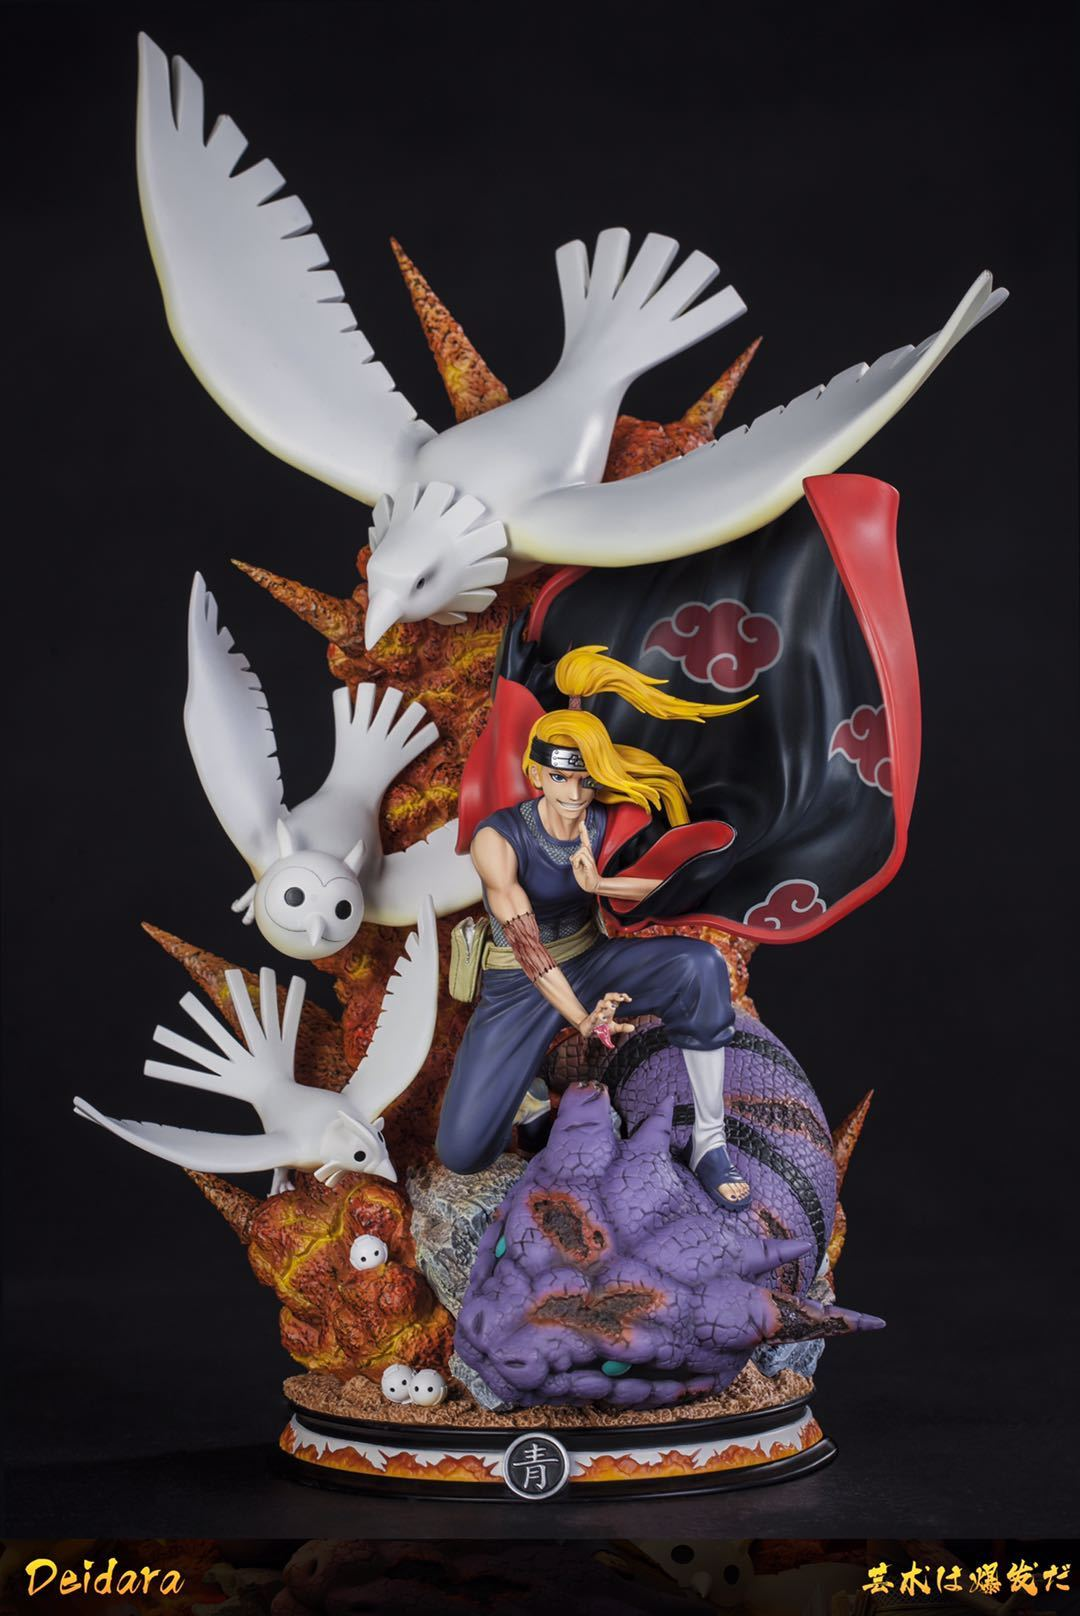 Clouds Studio Deidara 1/6 Scale Statue